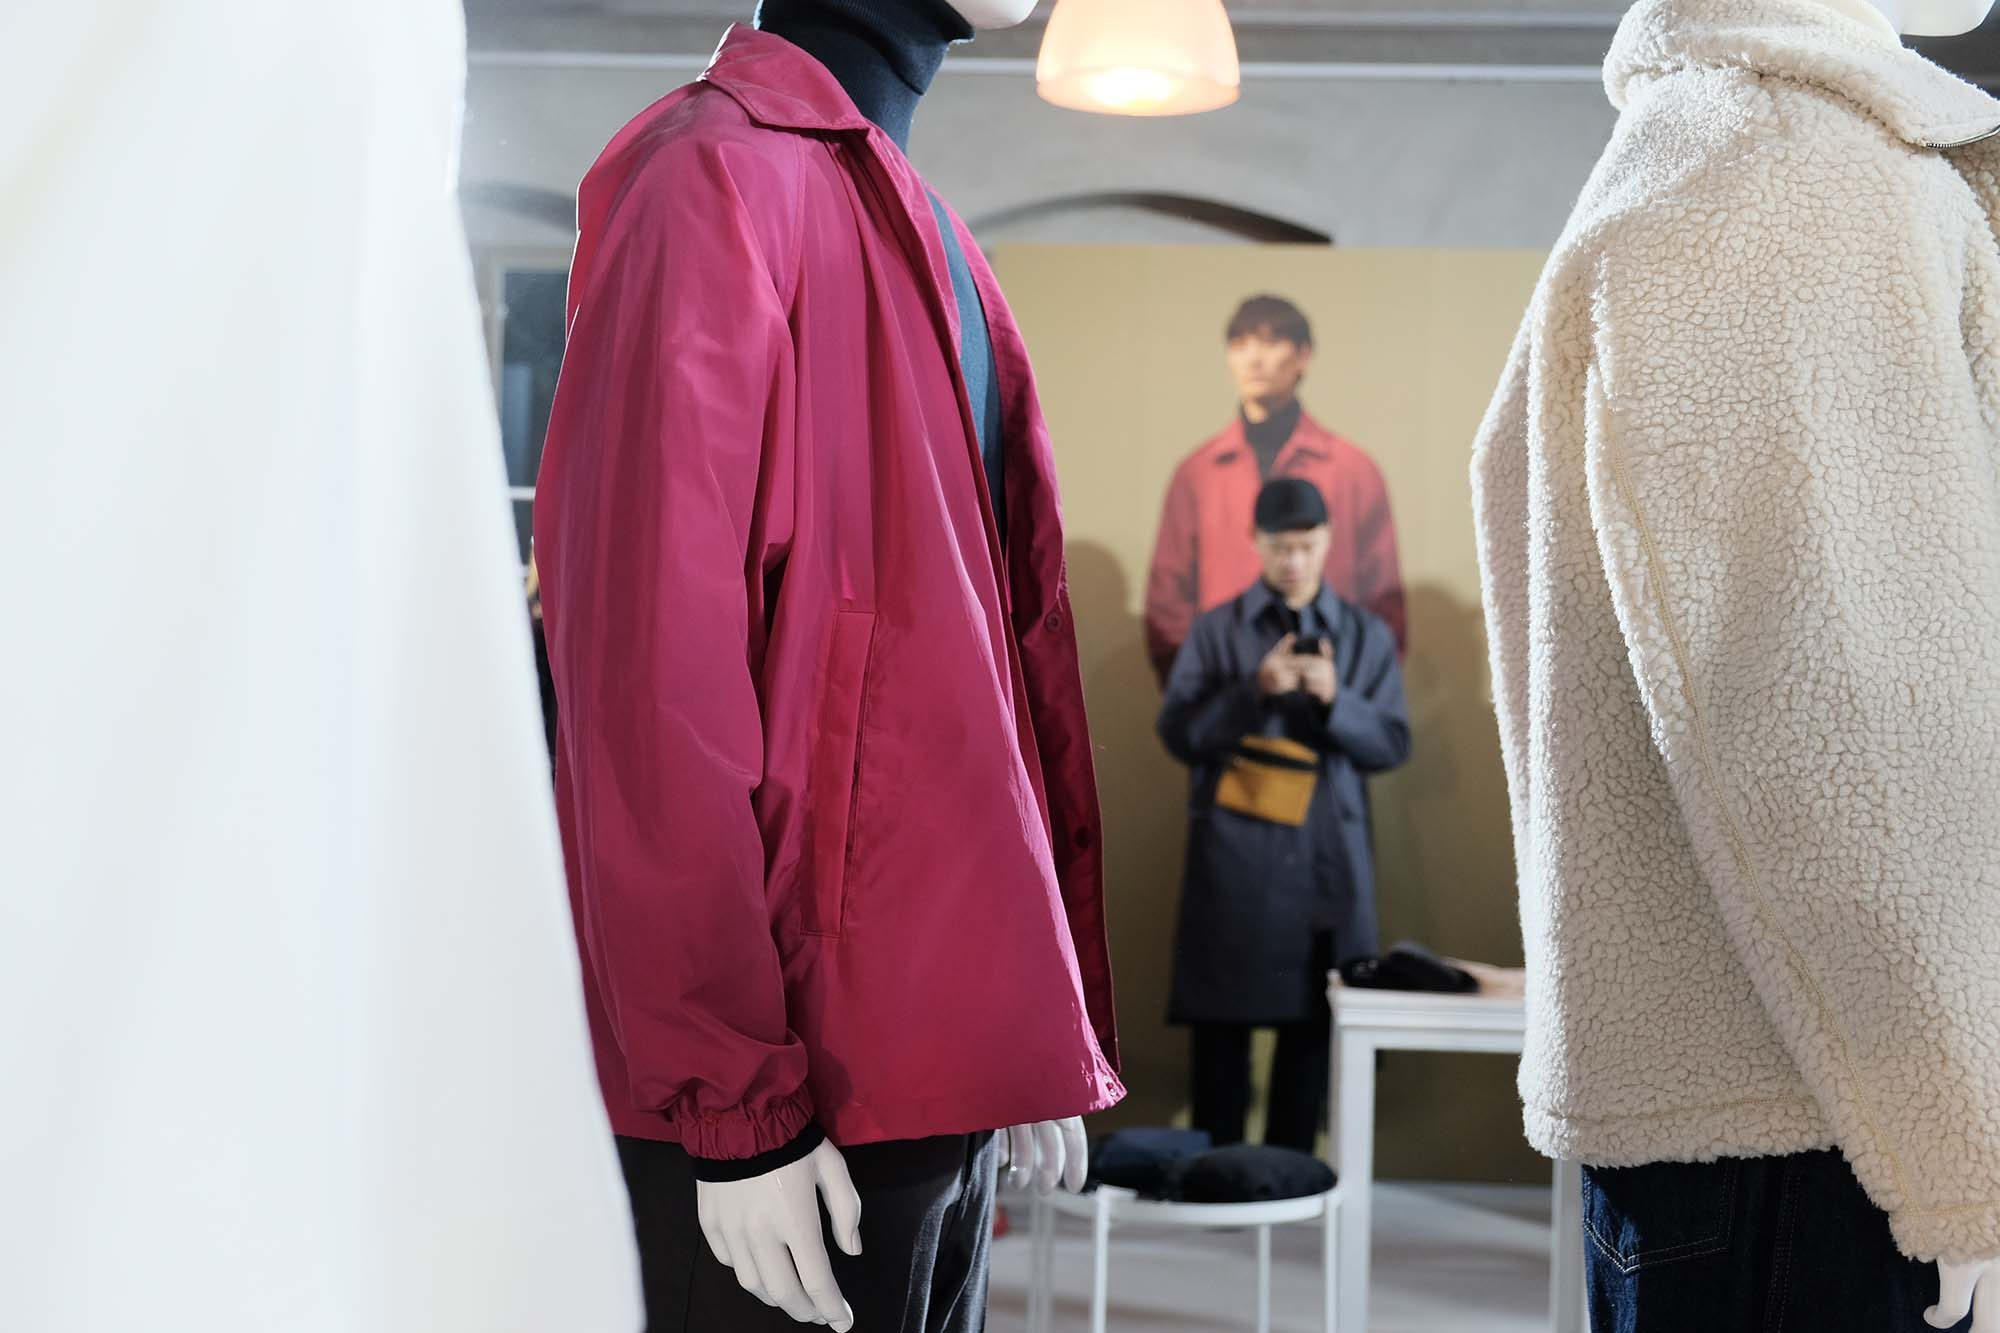 uniqlo-u-2018-aw-collection-preview-06